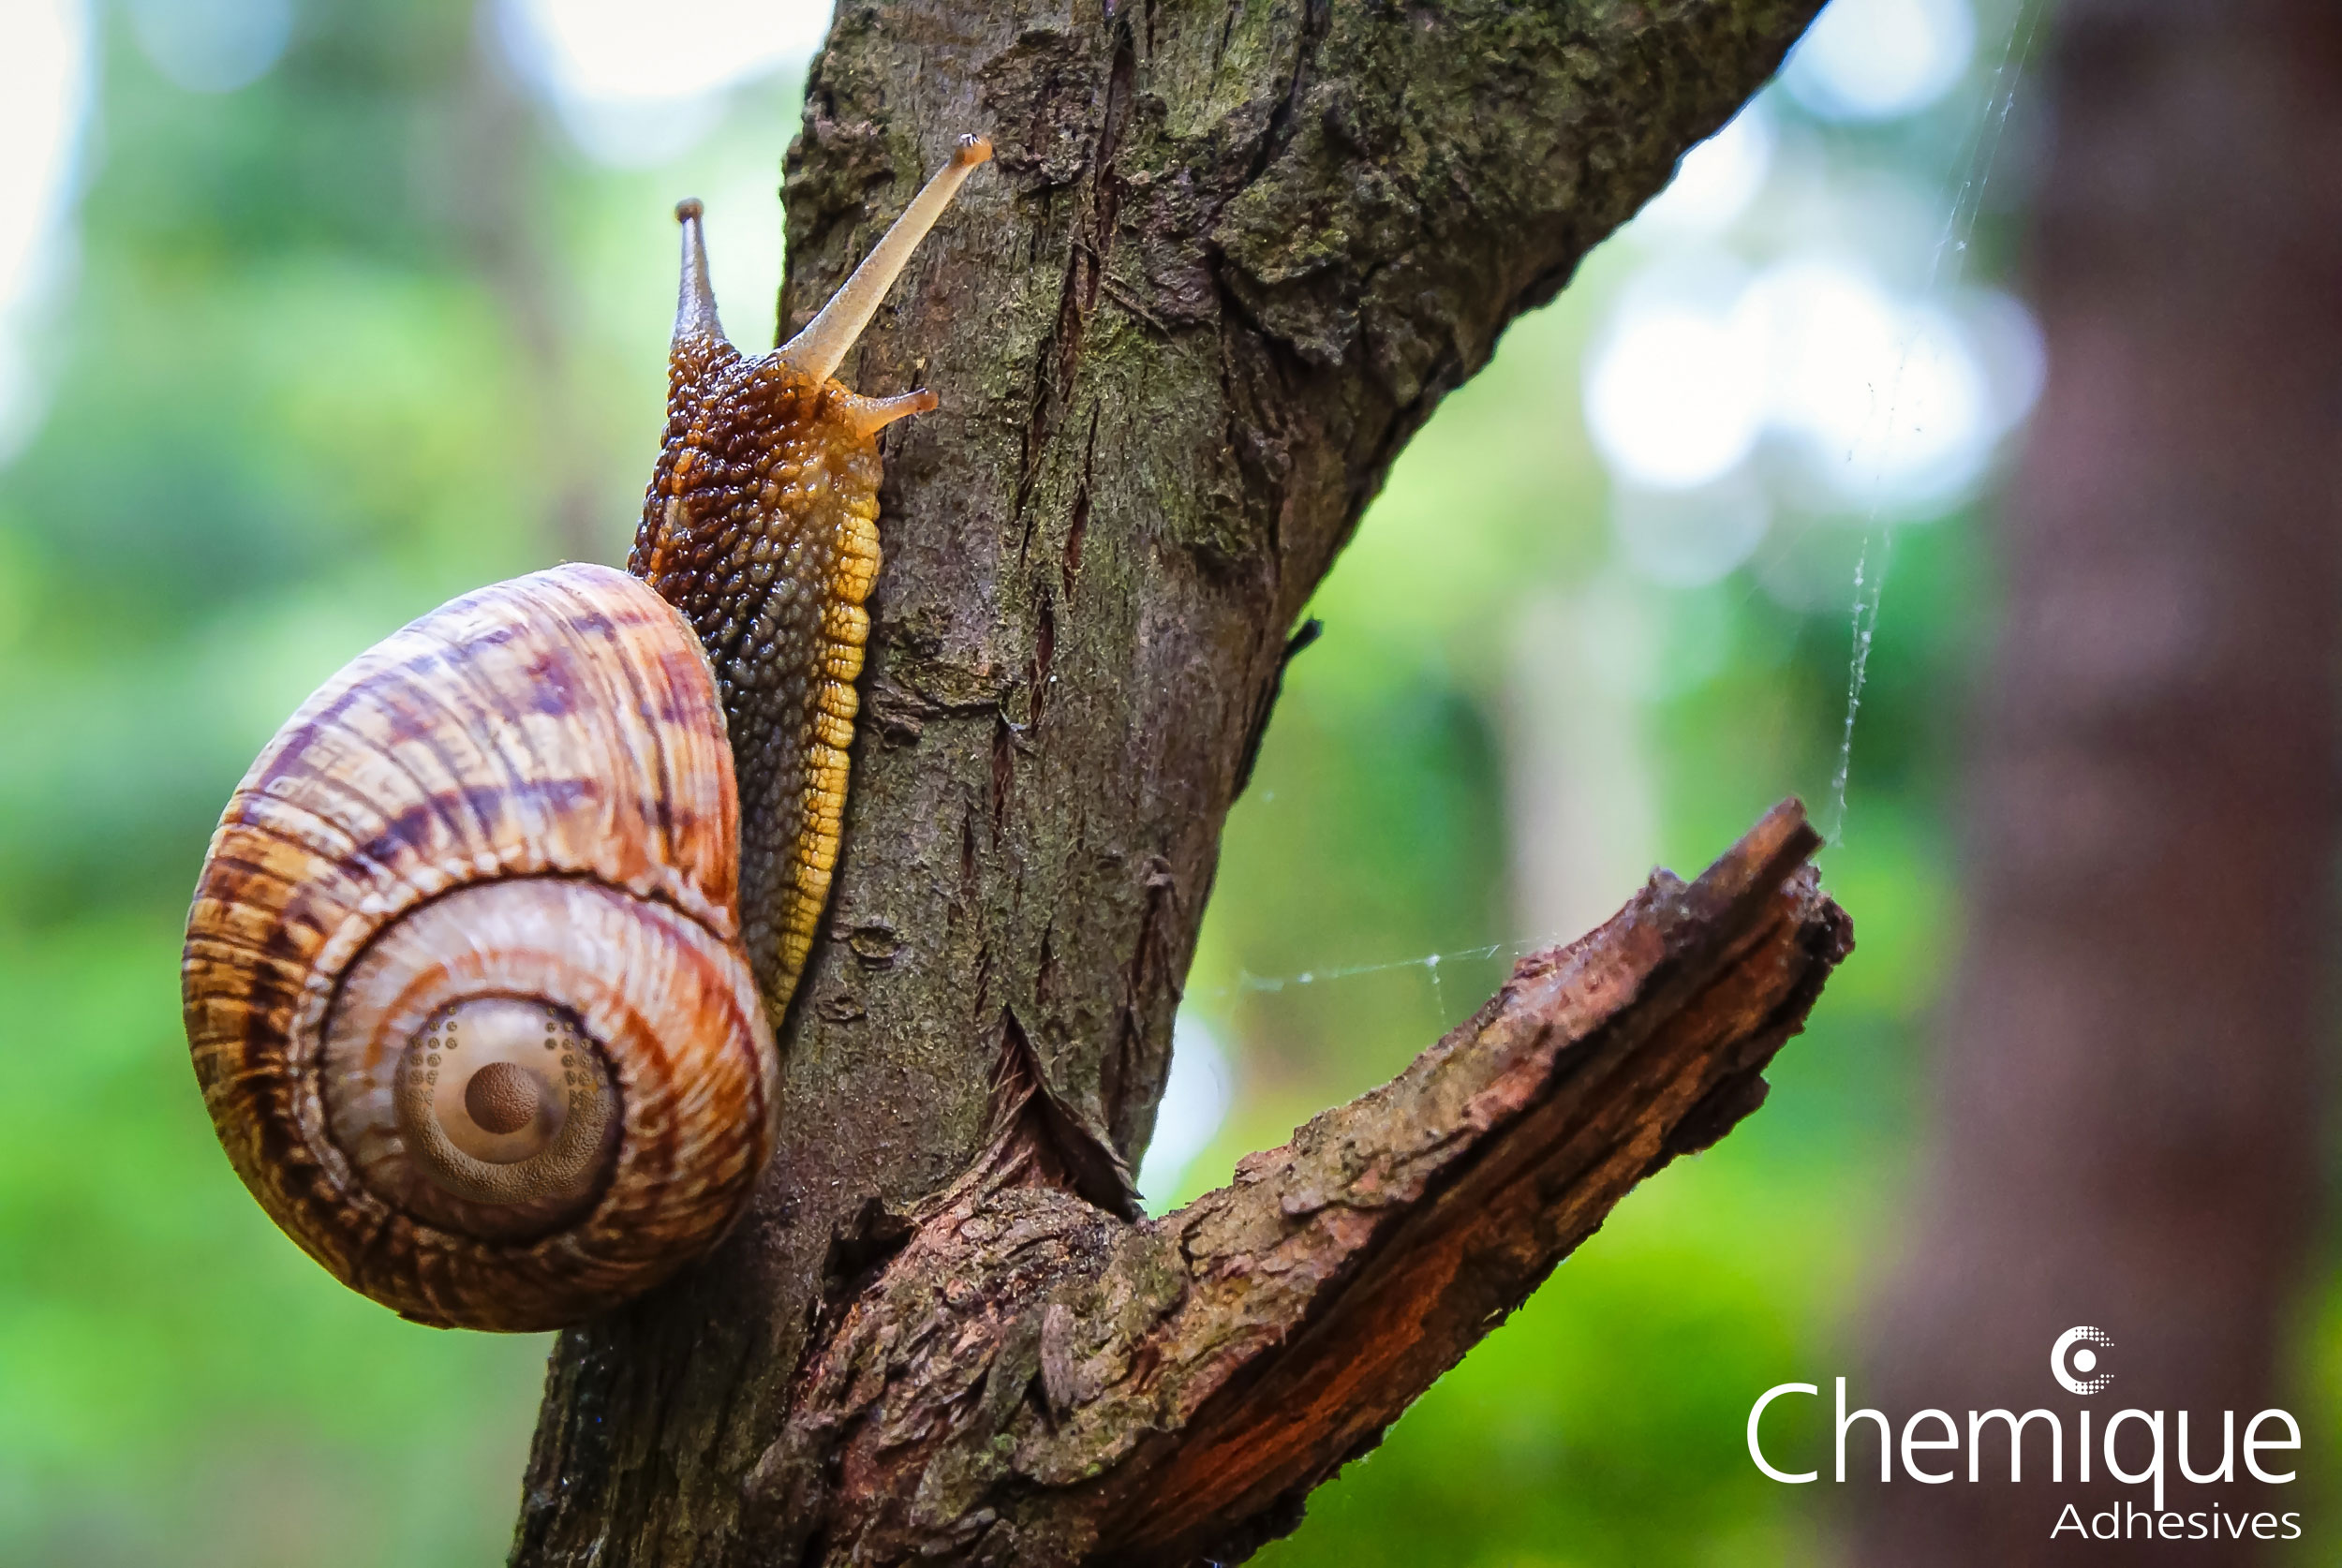 Chemique-Adhesives-Blog---Reversible-Adhesives-Snail-Slime